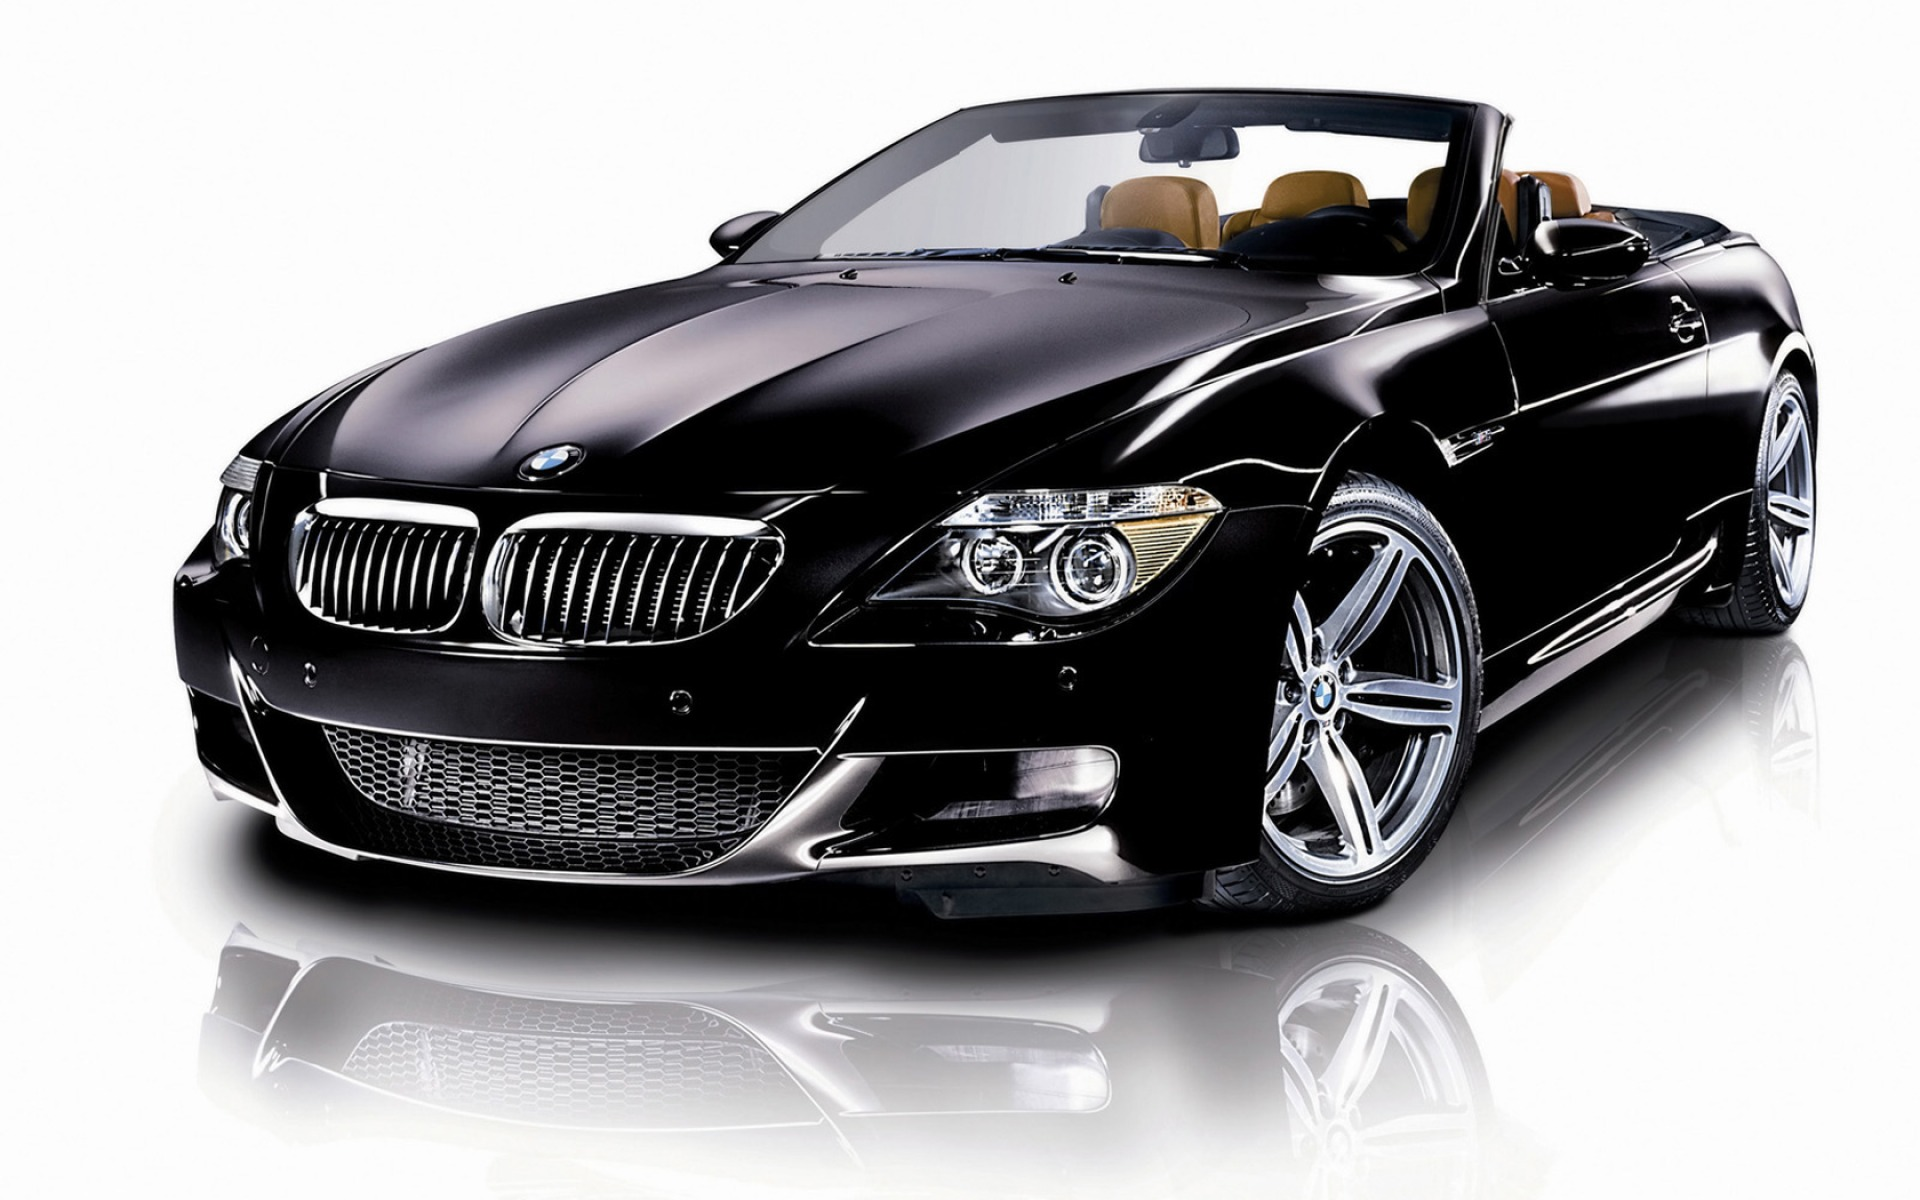 Ultrablogus  Pleasant Bmw Car Wallpaper Wallpapers For Free Download About   With Lovable Bmw M Convertible Wallpaper Bmw Cars With Endearing American Airlines   Interior Also Avanti Car Interiors In Addition Al Salamah Yacht Interior And  Chevelle Interior As Well As Dc Avanti Interior Additionally C Corvette Interior From Allfreedownloadcom With Ultrablogus  Lovable Bmw Car Wallpaper Wallpapers For Free Download About   With Endearing Bmw M Convertible Wallpaper Bmw Cars And Pleasant American Airlines   Interior Also Avanti Car Interiors In Addition Al Salamah Yacht Interior From Allfreedownloadcom